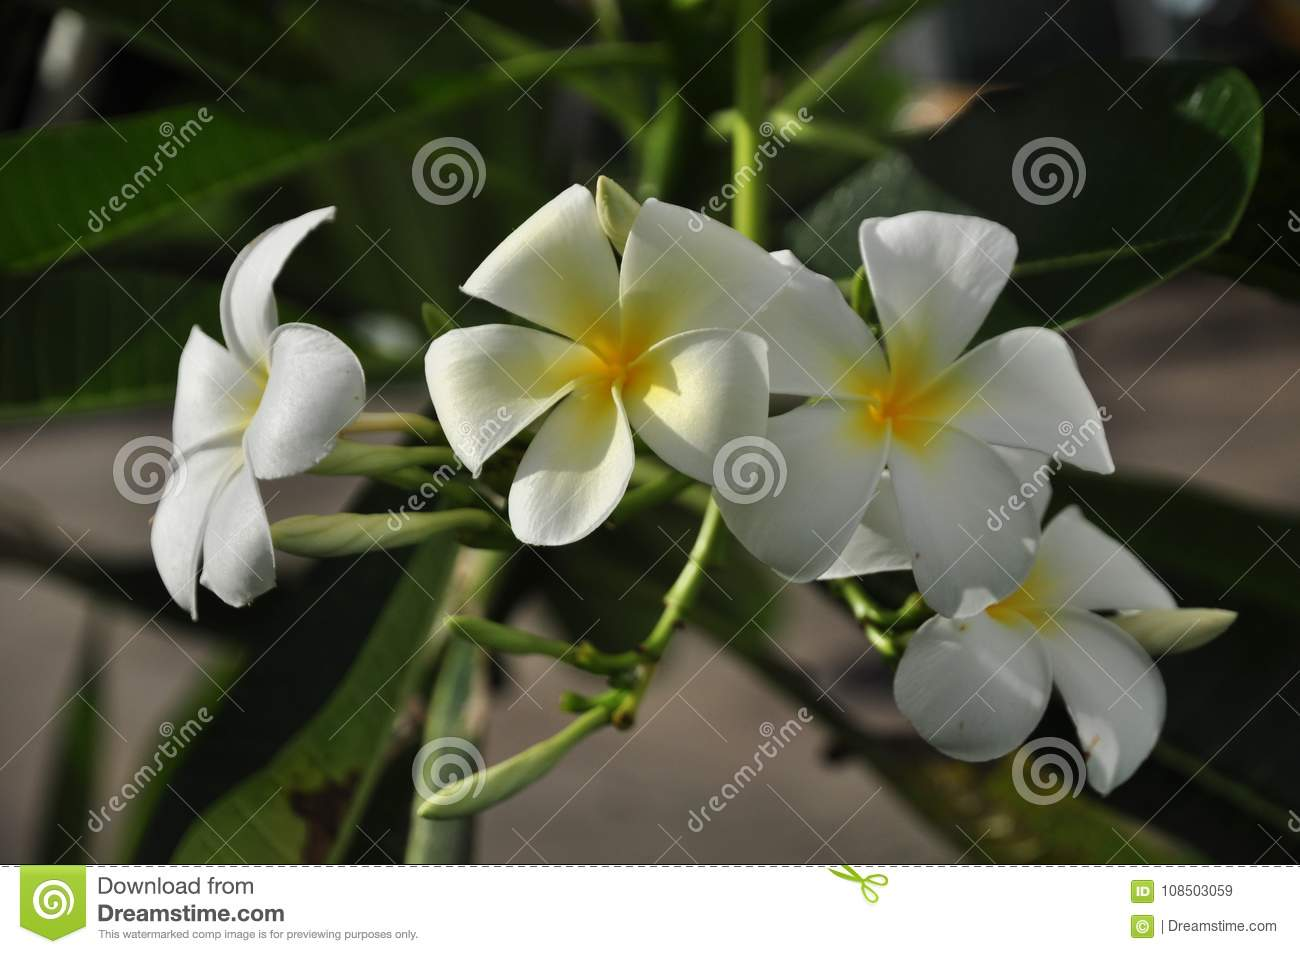 White And Yellow Plumeria Flowers In The Garden Stock Image Image